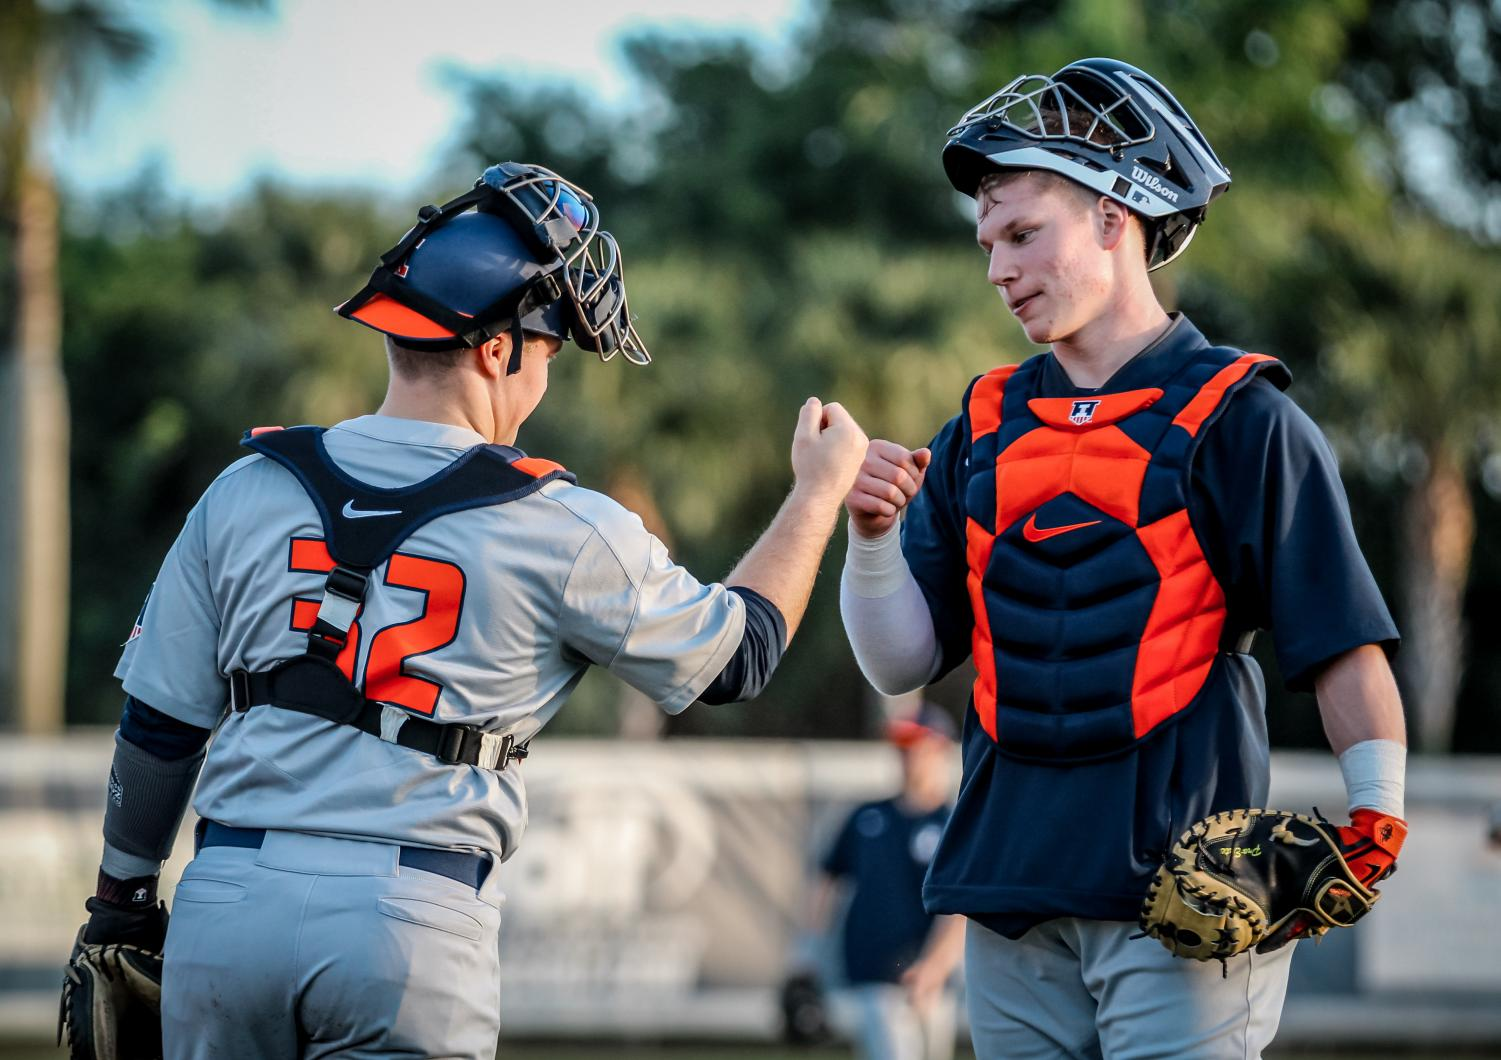 David Craan and teammates celebrate a victory against Florida Atlantic over the weekend. The Illini took all three games of the series for a 6-0 start to the season.